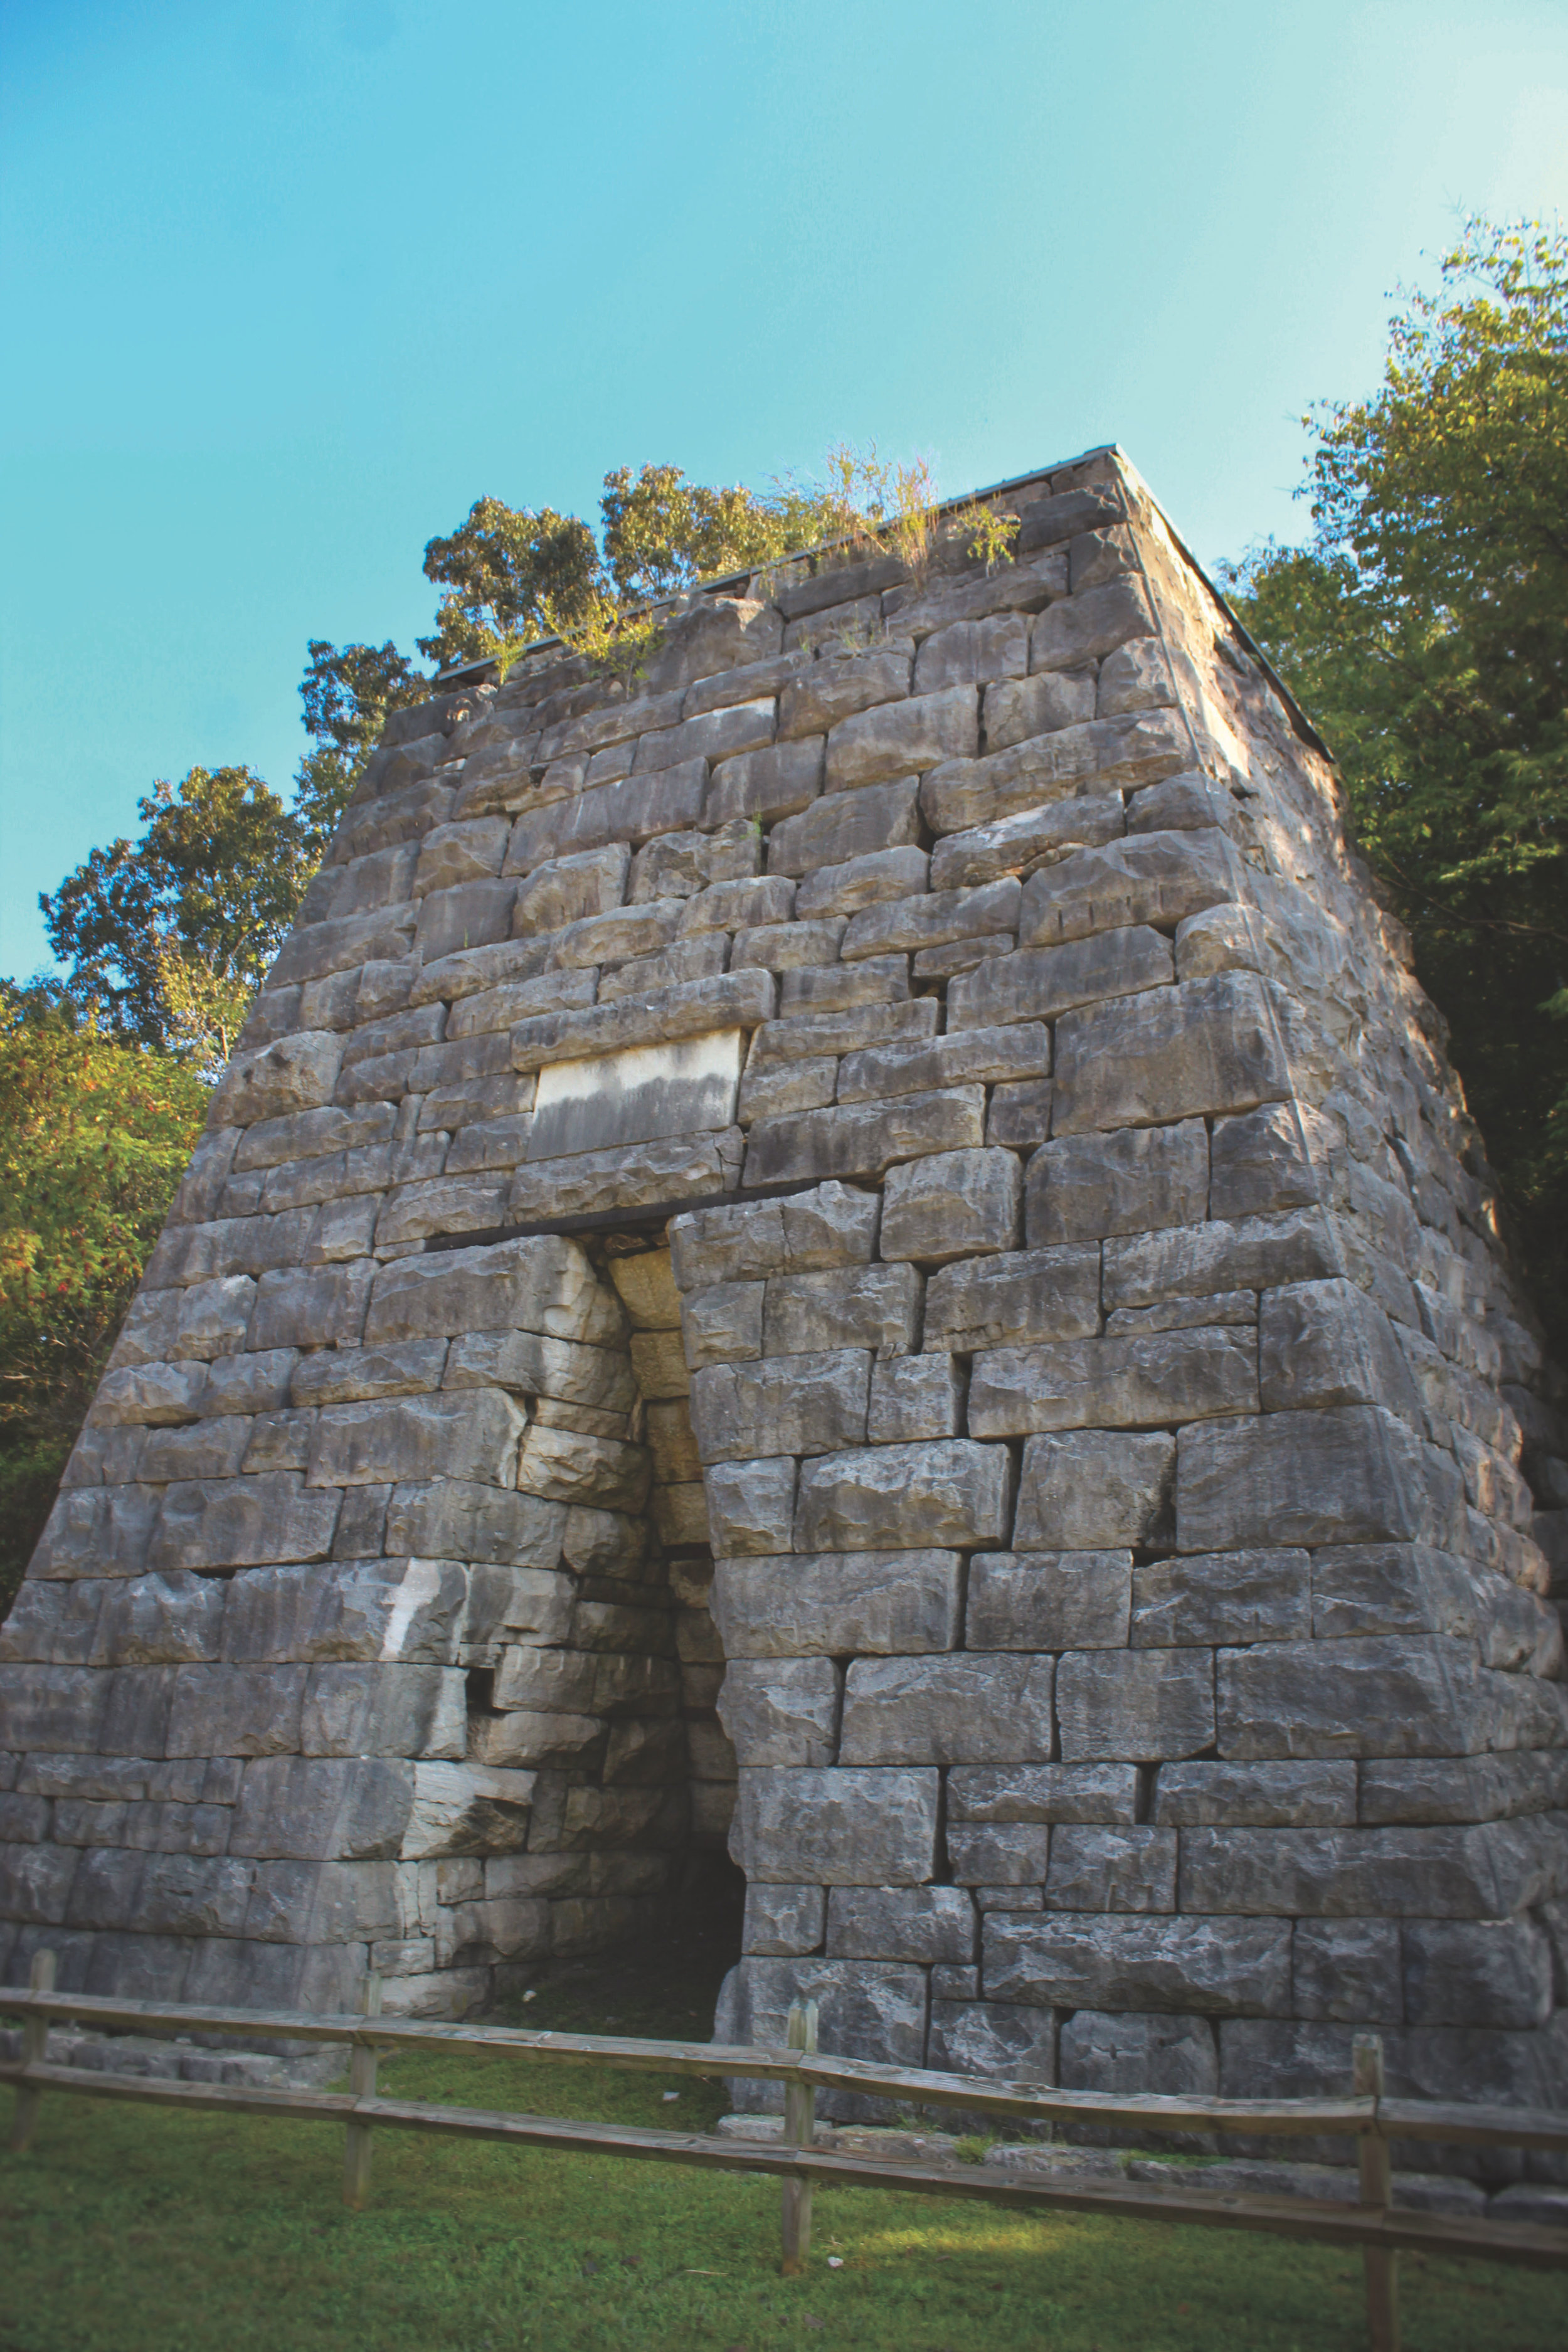 Between the Planetarium and the Homeplace, the Great Western Furnace is the only standing iron works furnace left at LBL.